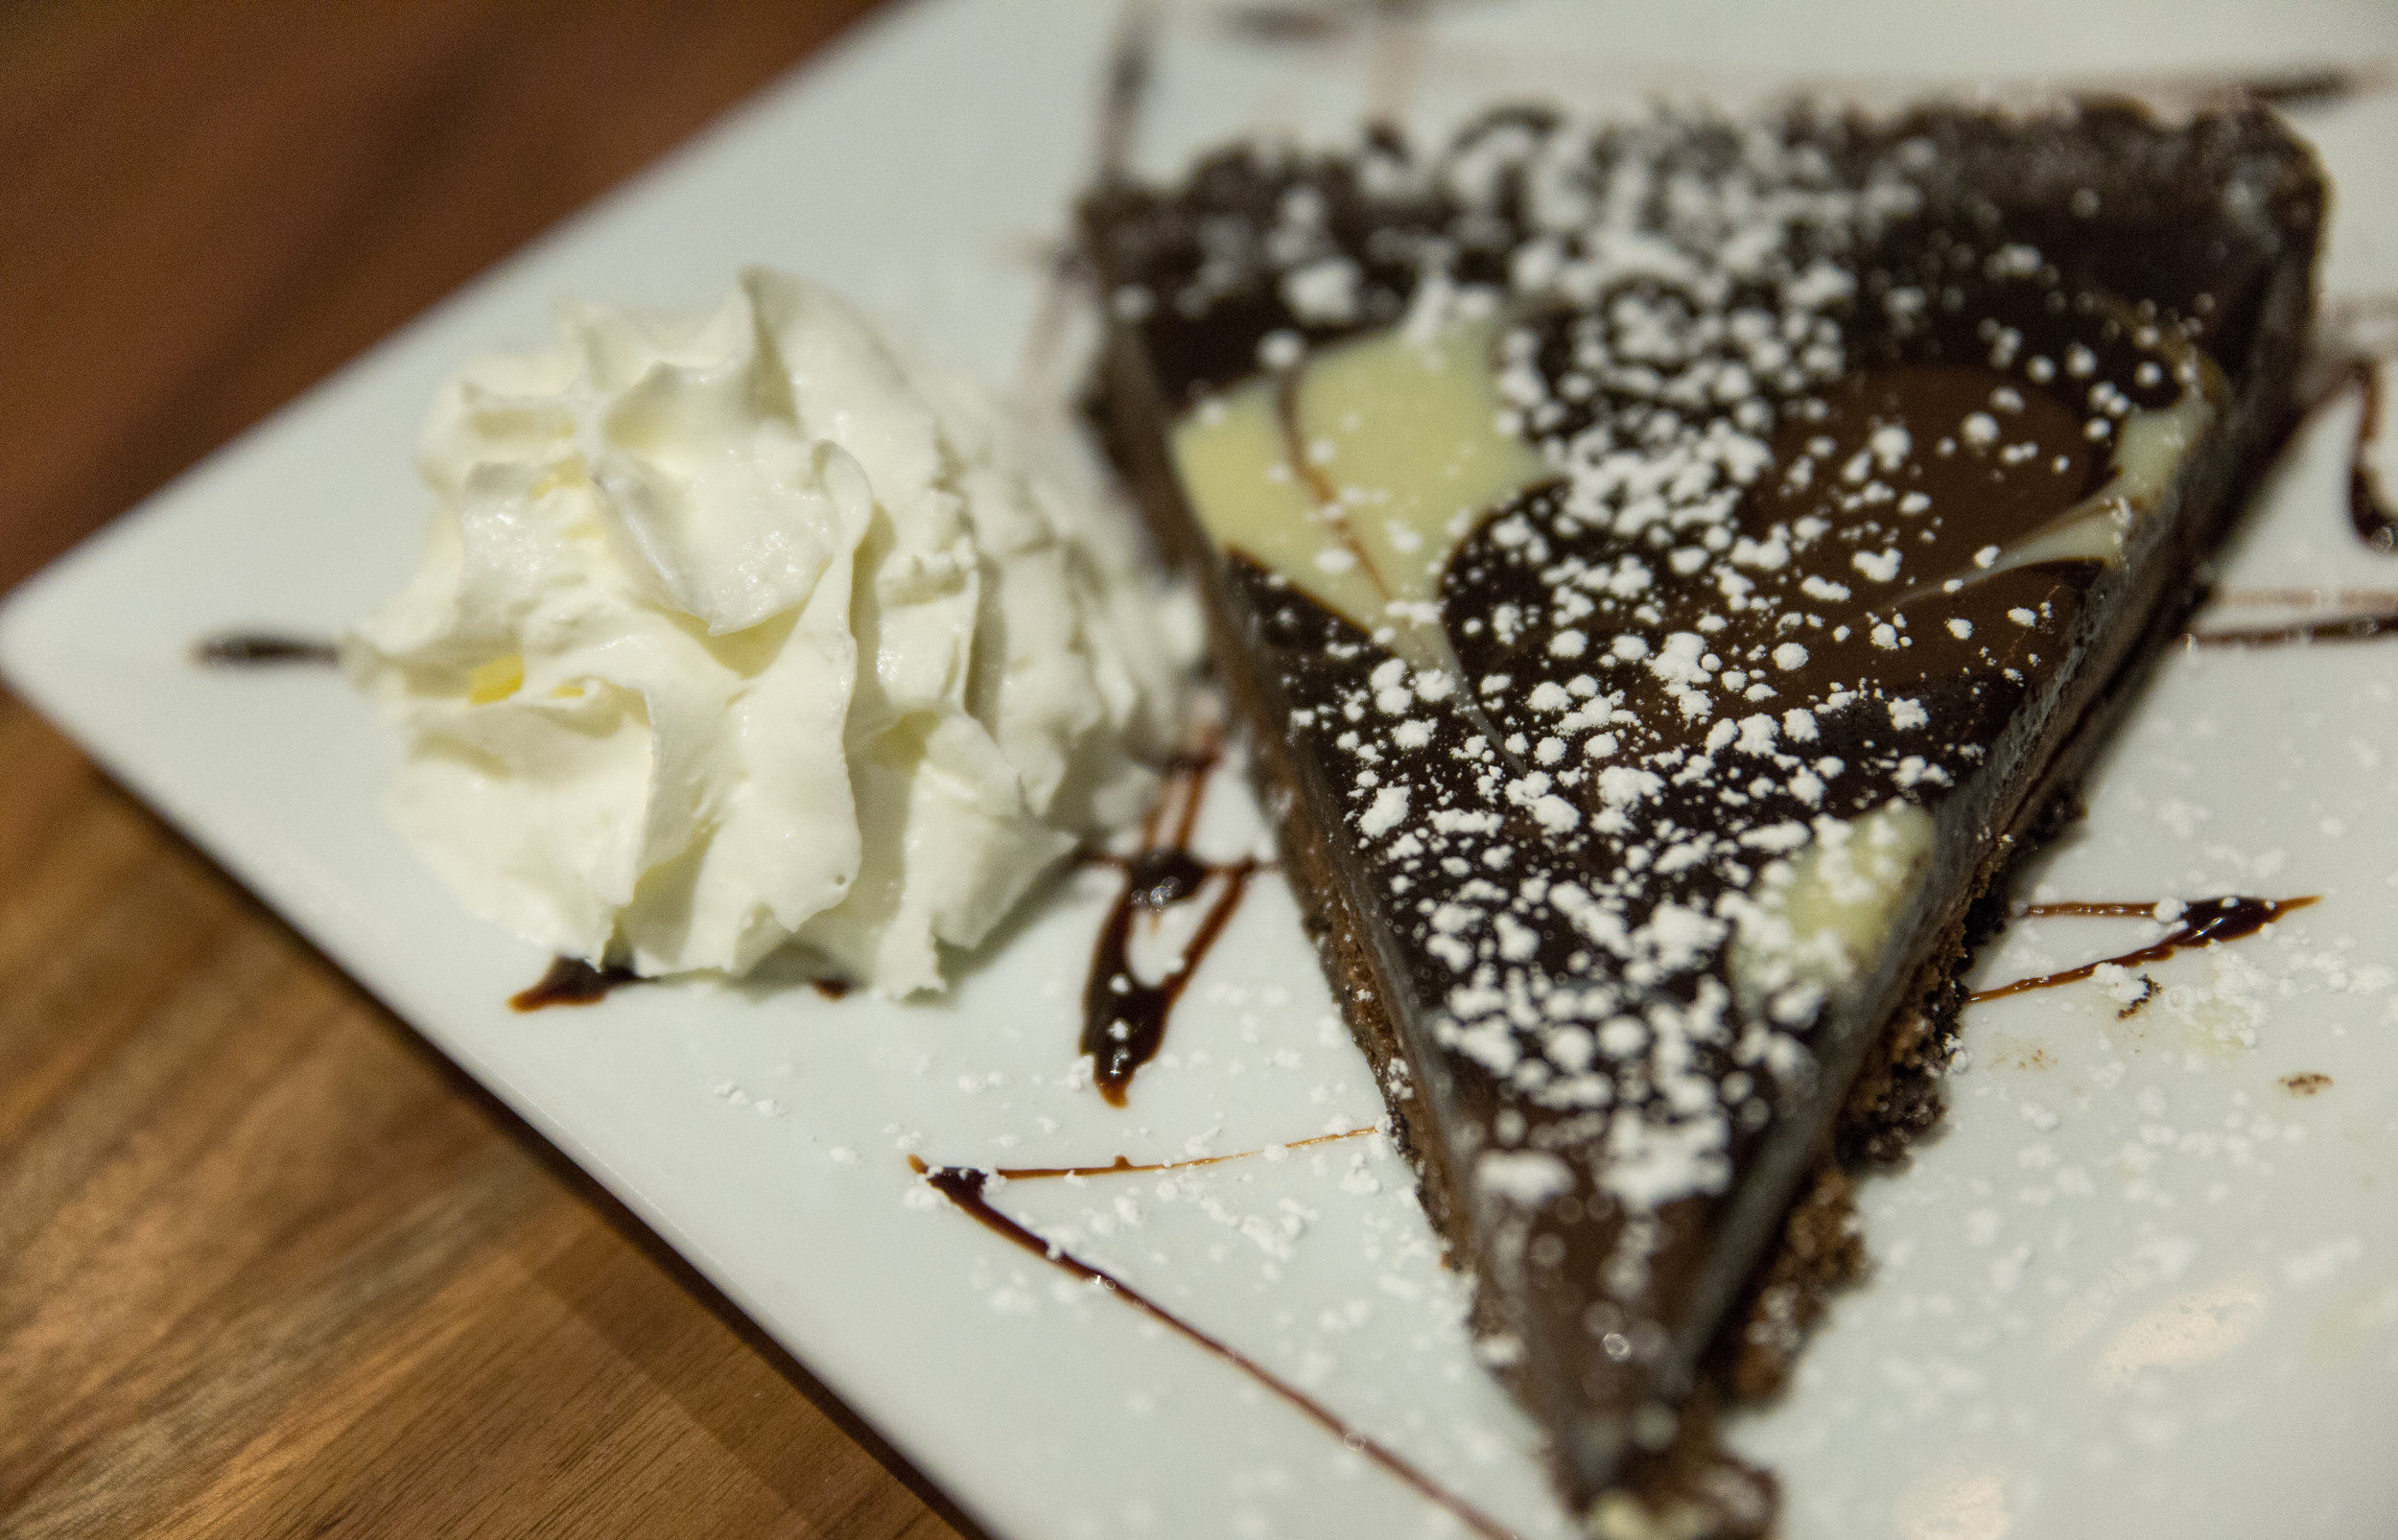 The Chocolate Polenta Cake is flourless and mixes up white, dark and milk chocolate on a polenta crust to satisfy chocolate lovers of all kinds.